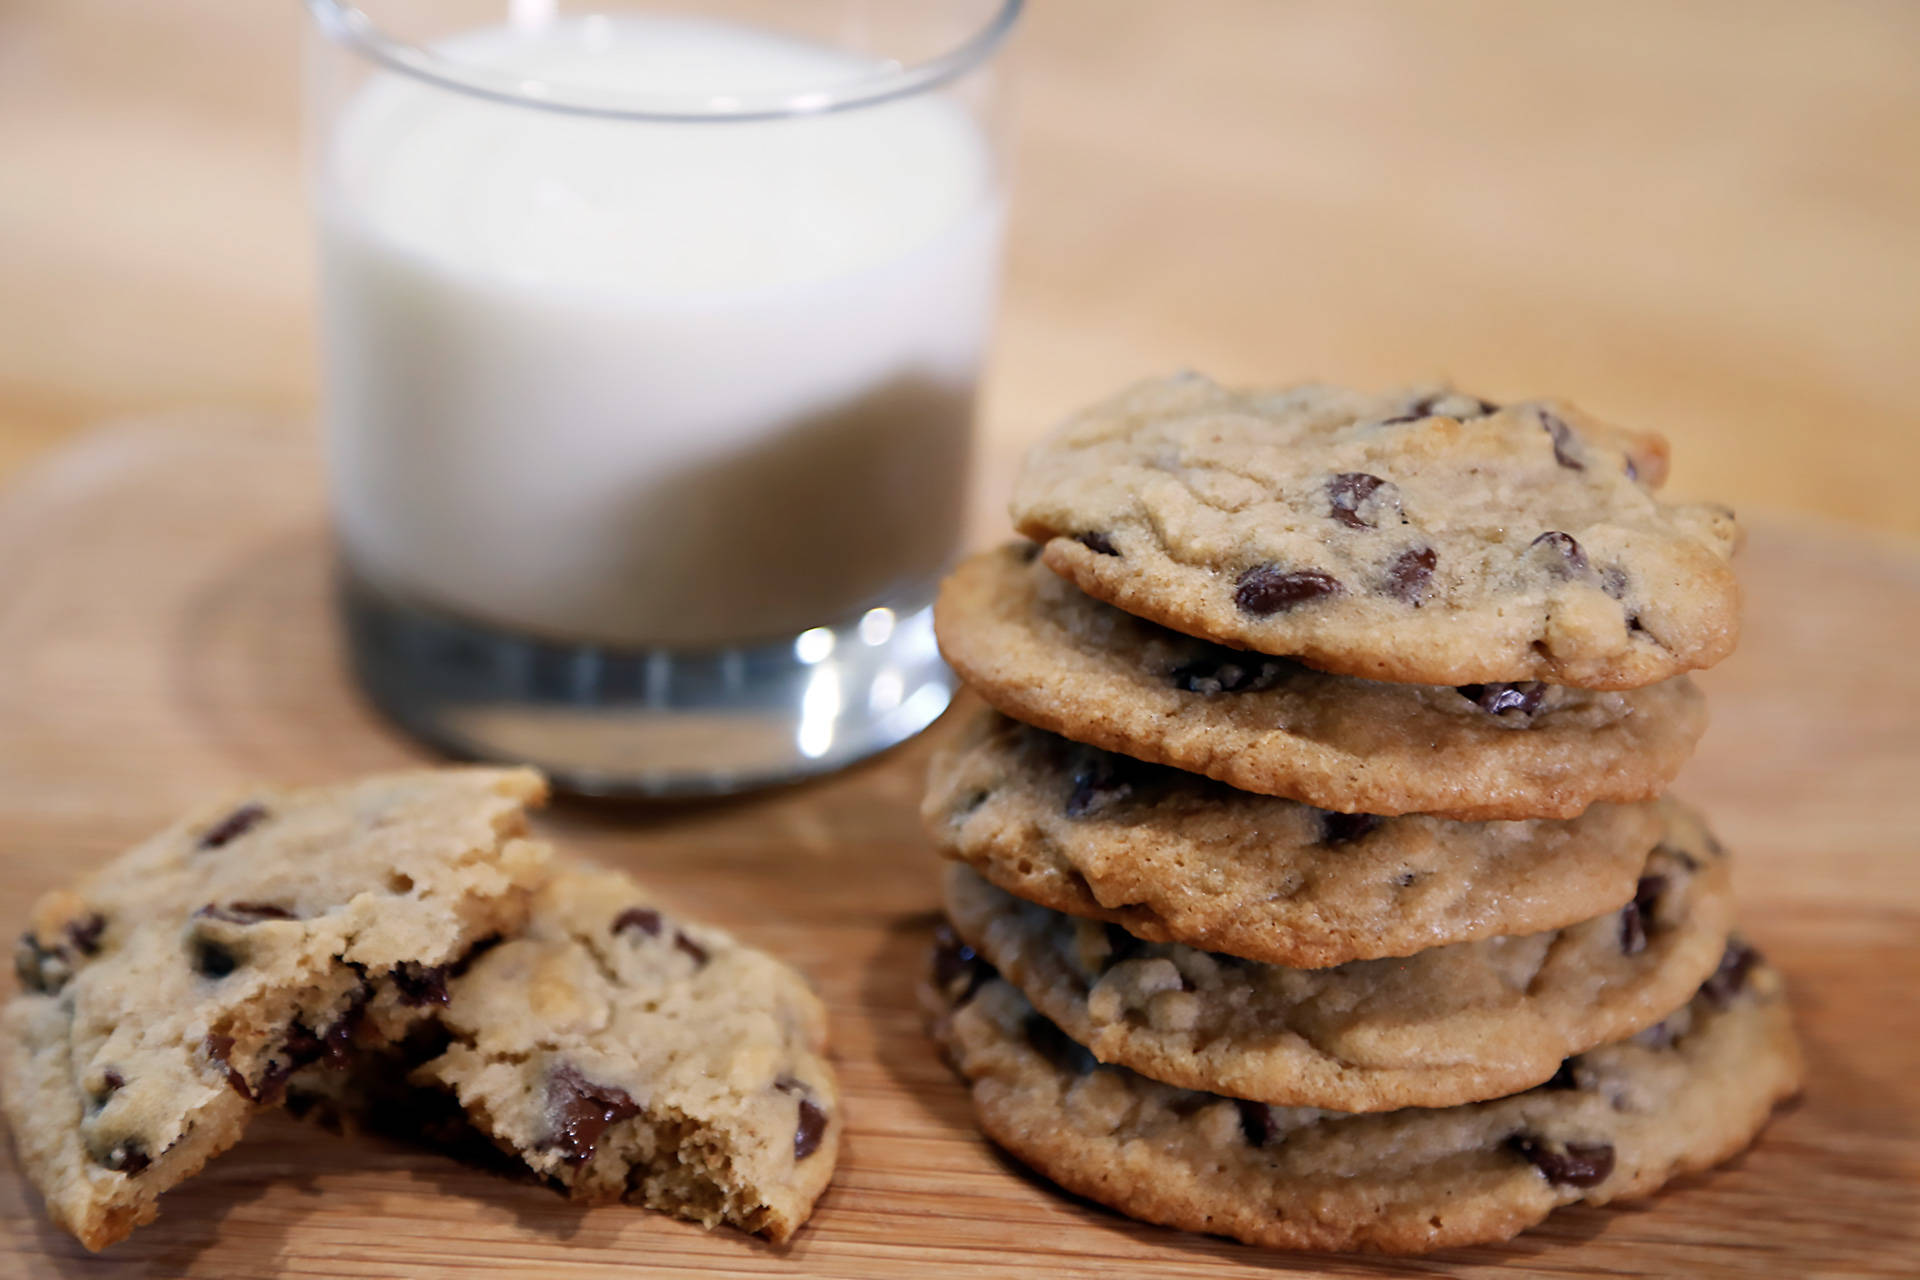 Chocolate Chip Cookie Recipe Delicately Crisp On The Outside Slightly Chewy Inside New Year 8217 S Recipes Bay Area Bites Kqed Food